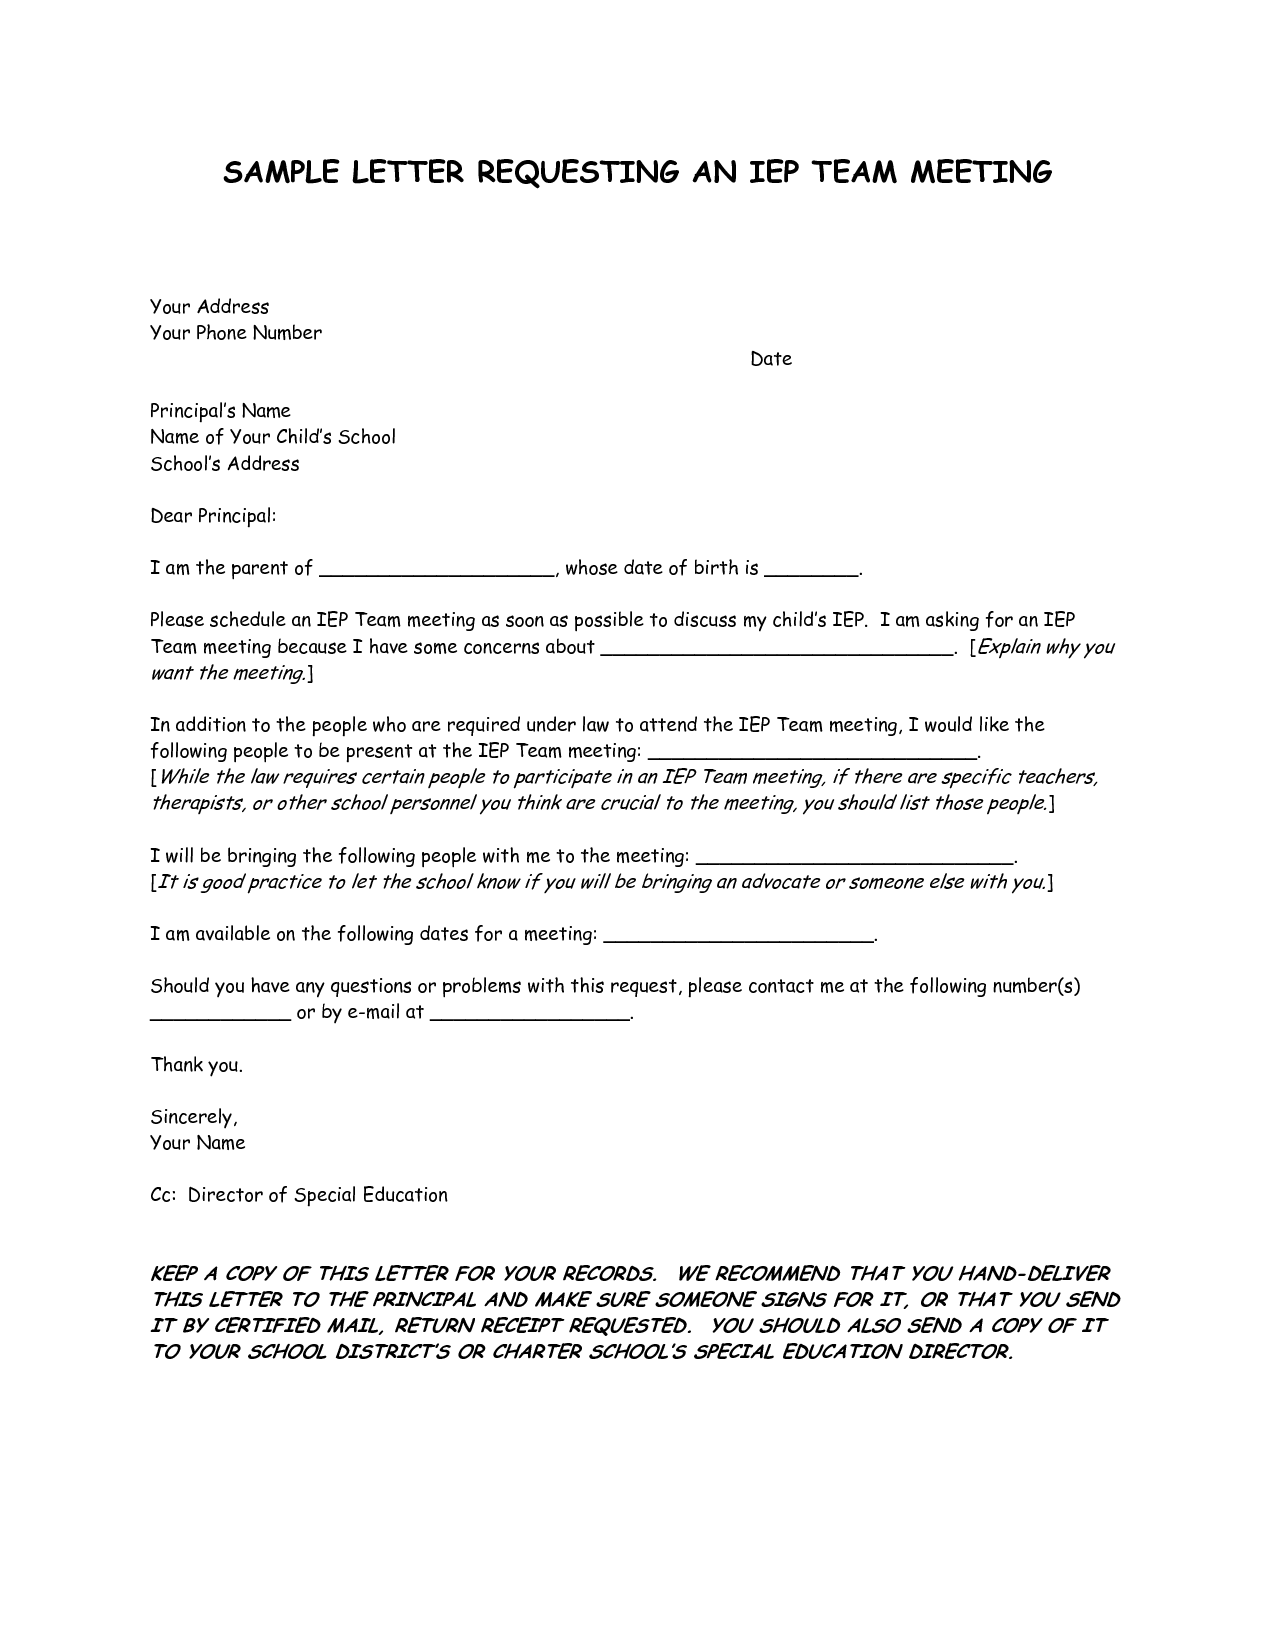 Parent Meeting Letters | SAMPLE LETTER REQUESTING AN IEP TEAM MEETING